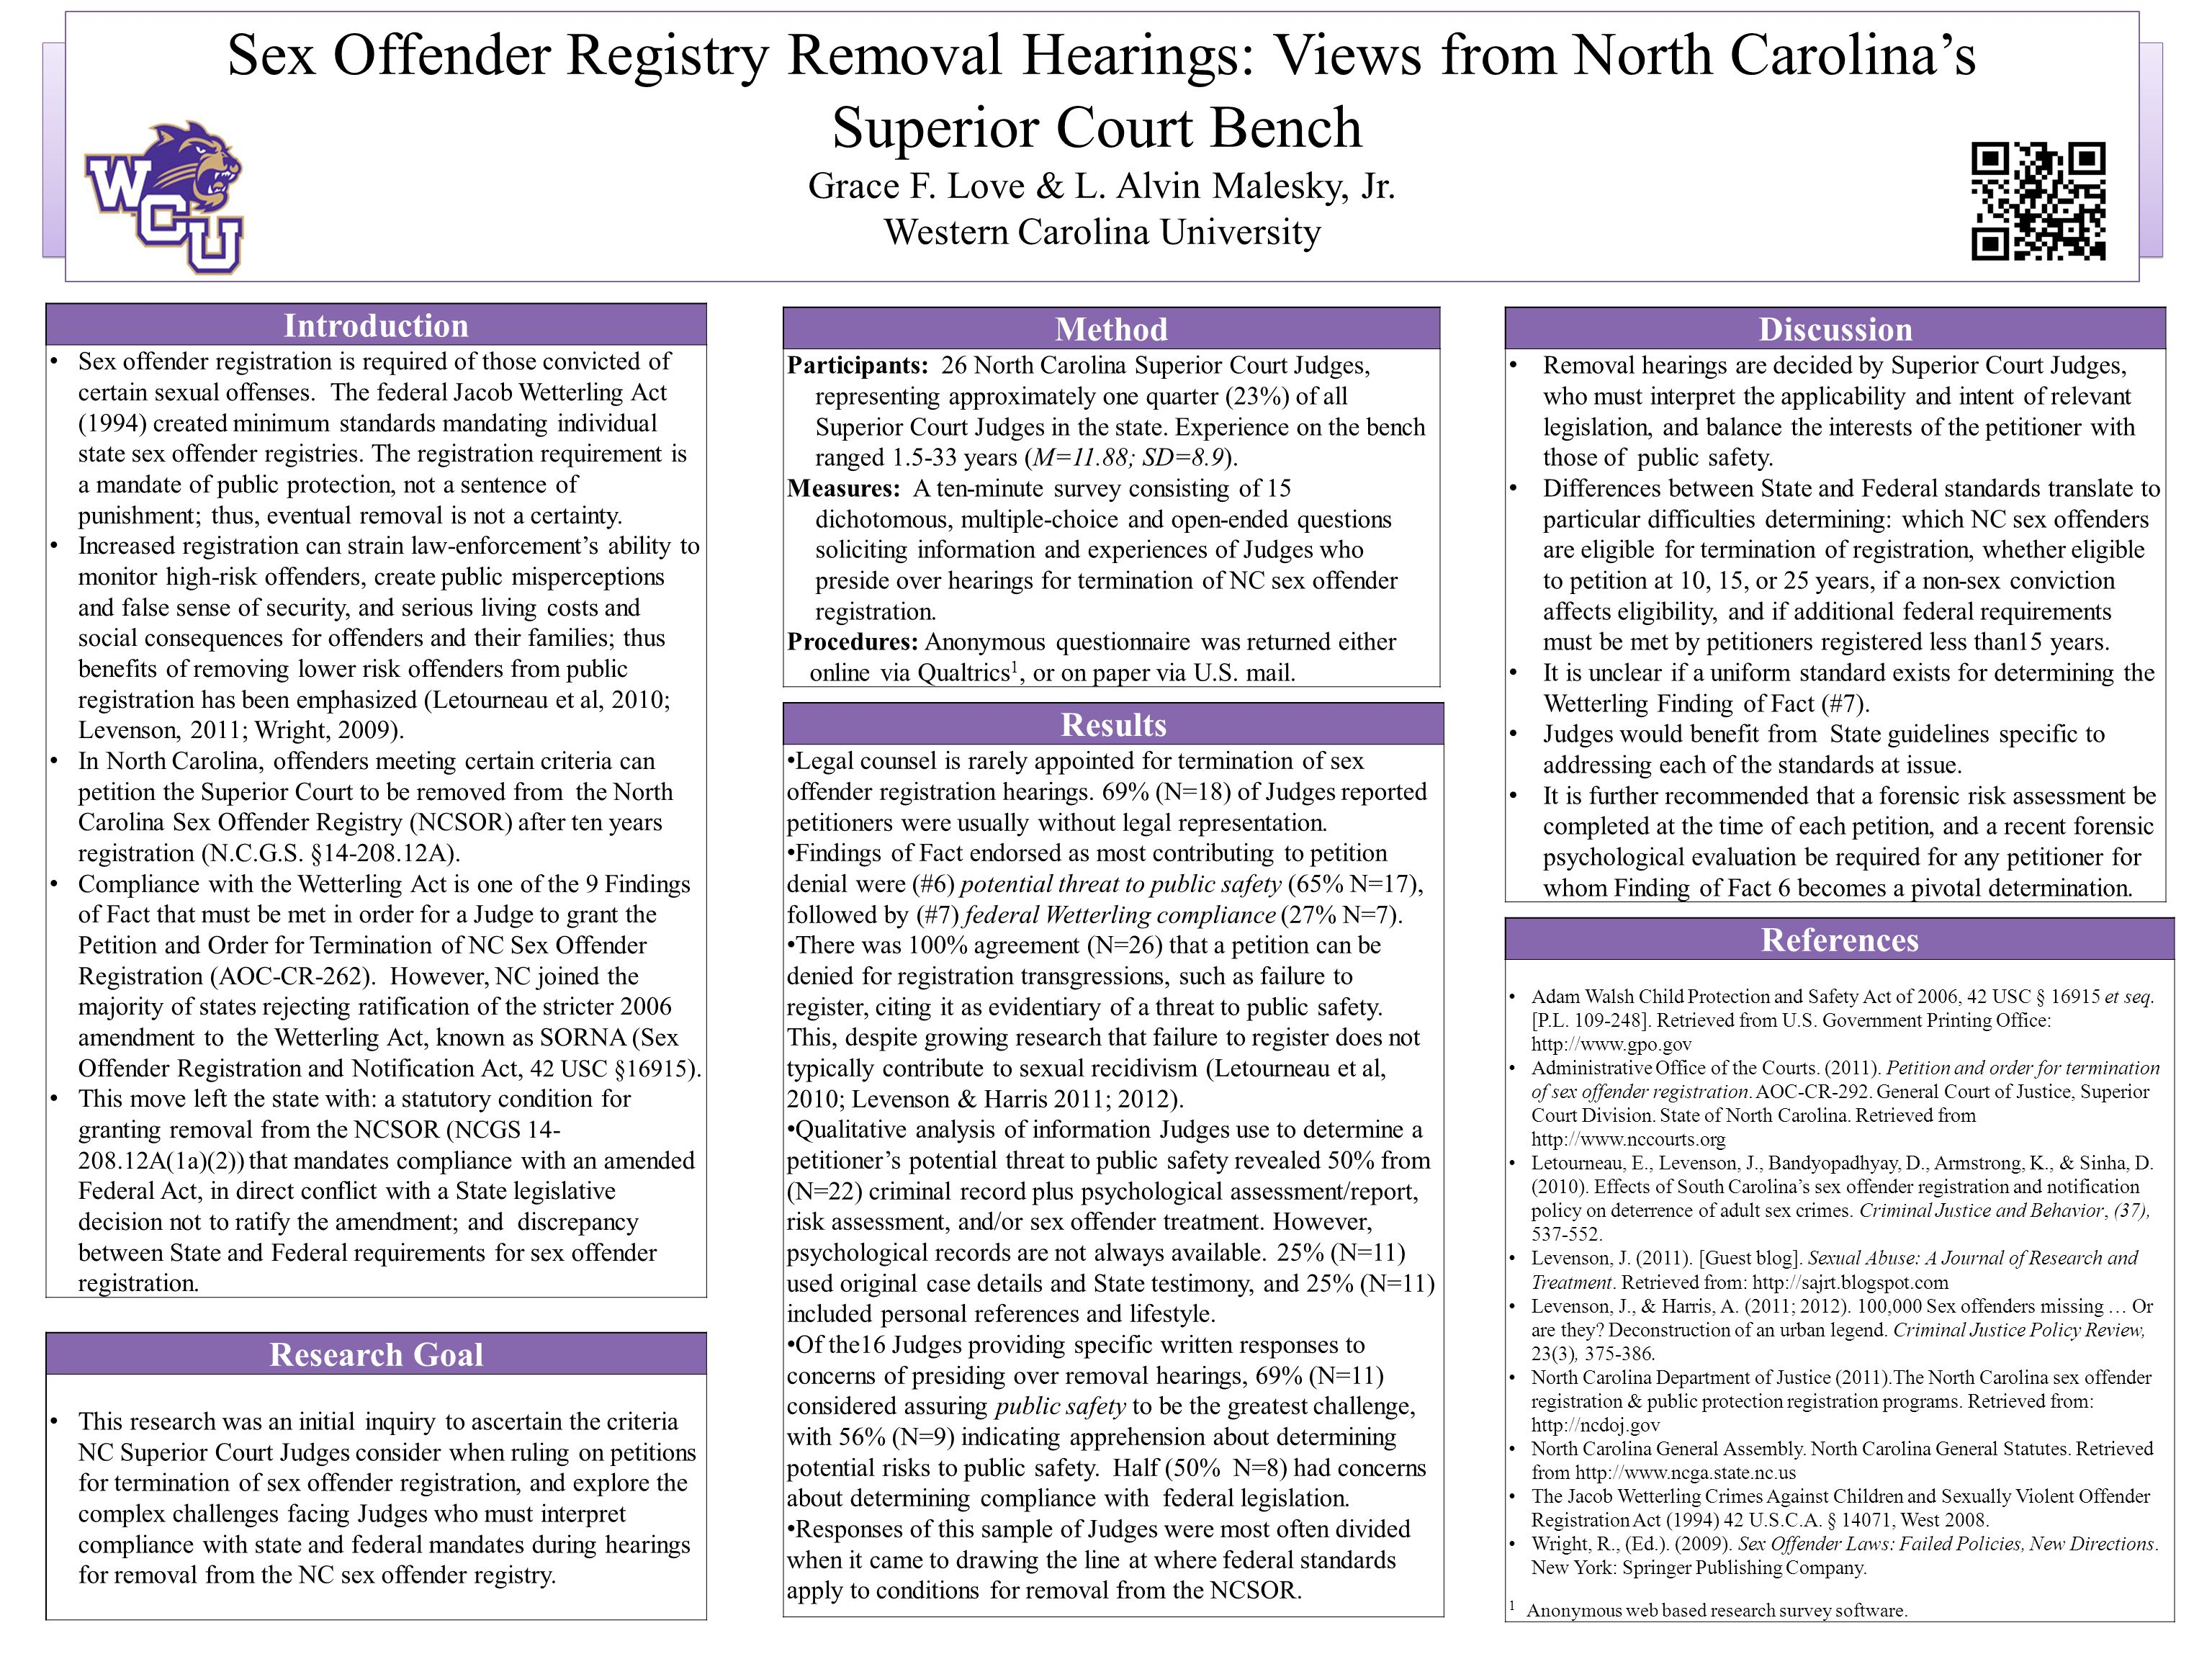 Sex Offender Registry Removal Hearings: Views from North Carolina's Superior Court Bench Grace F. Love & L. Alvin Malesky, Jr. Western Carolina Univer